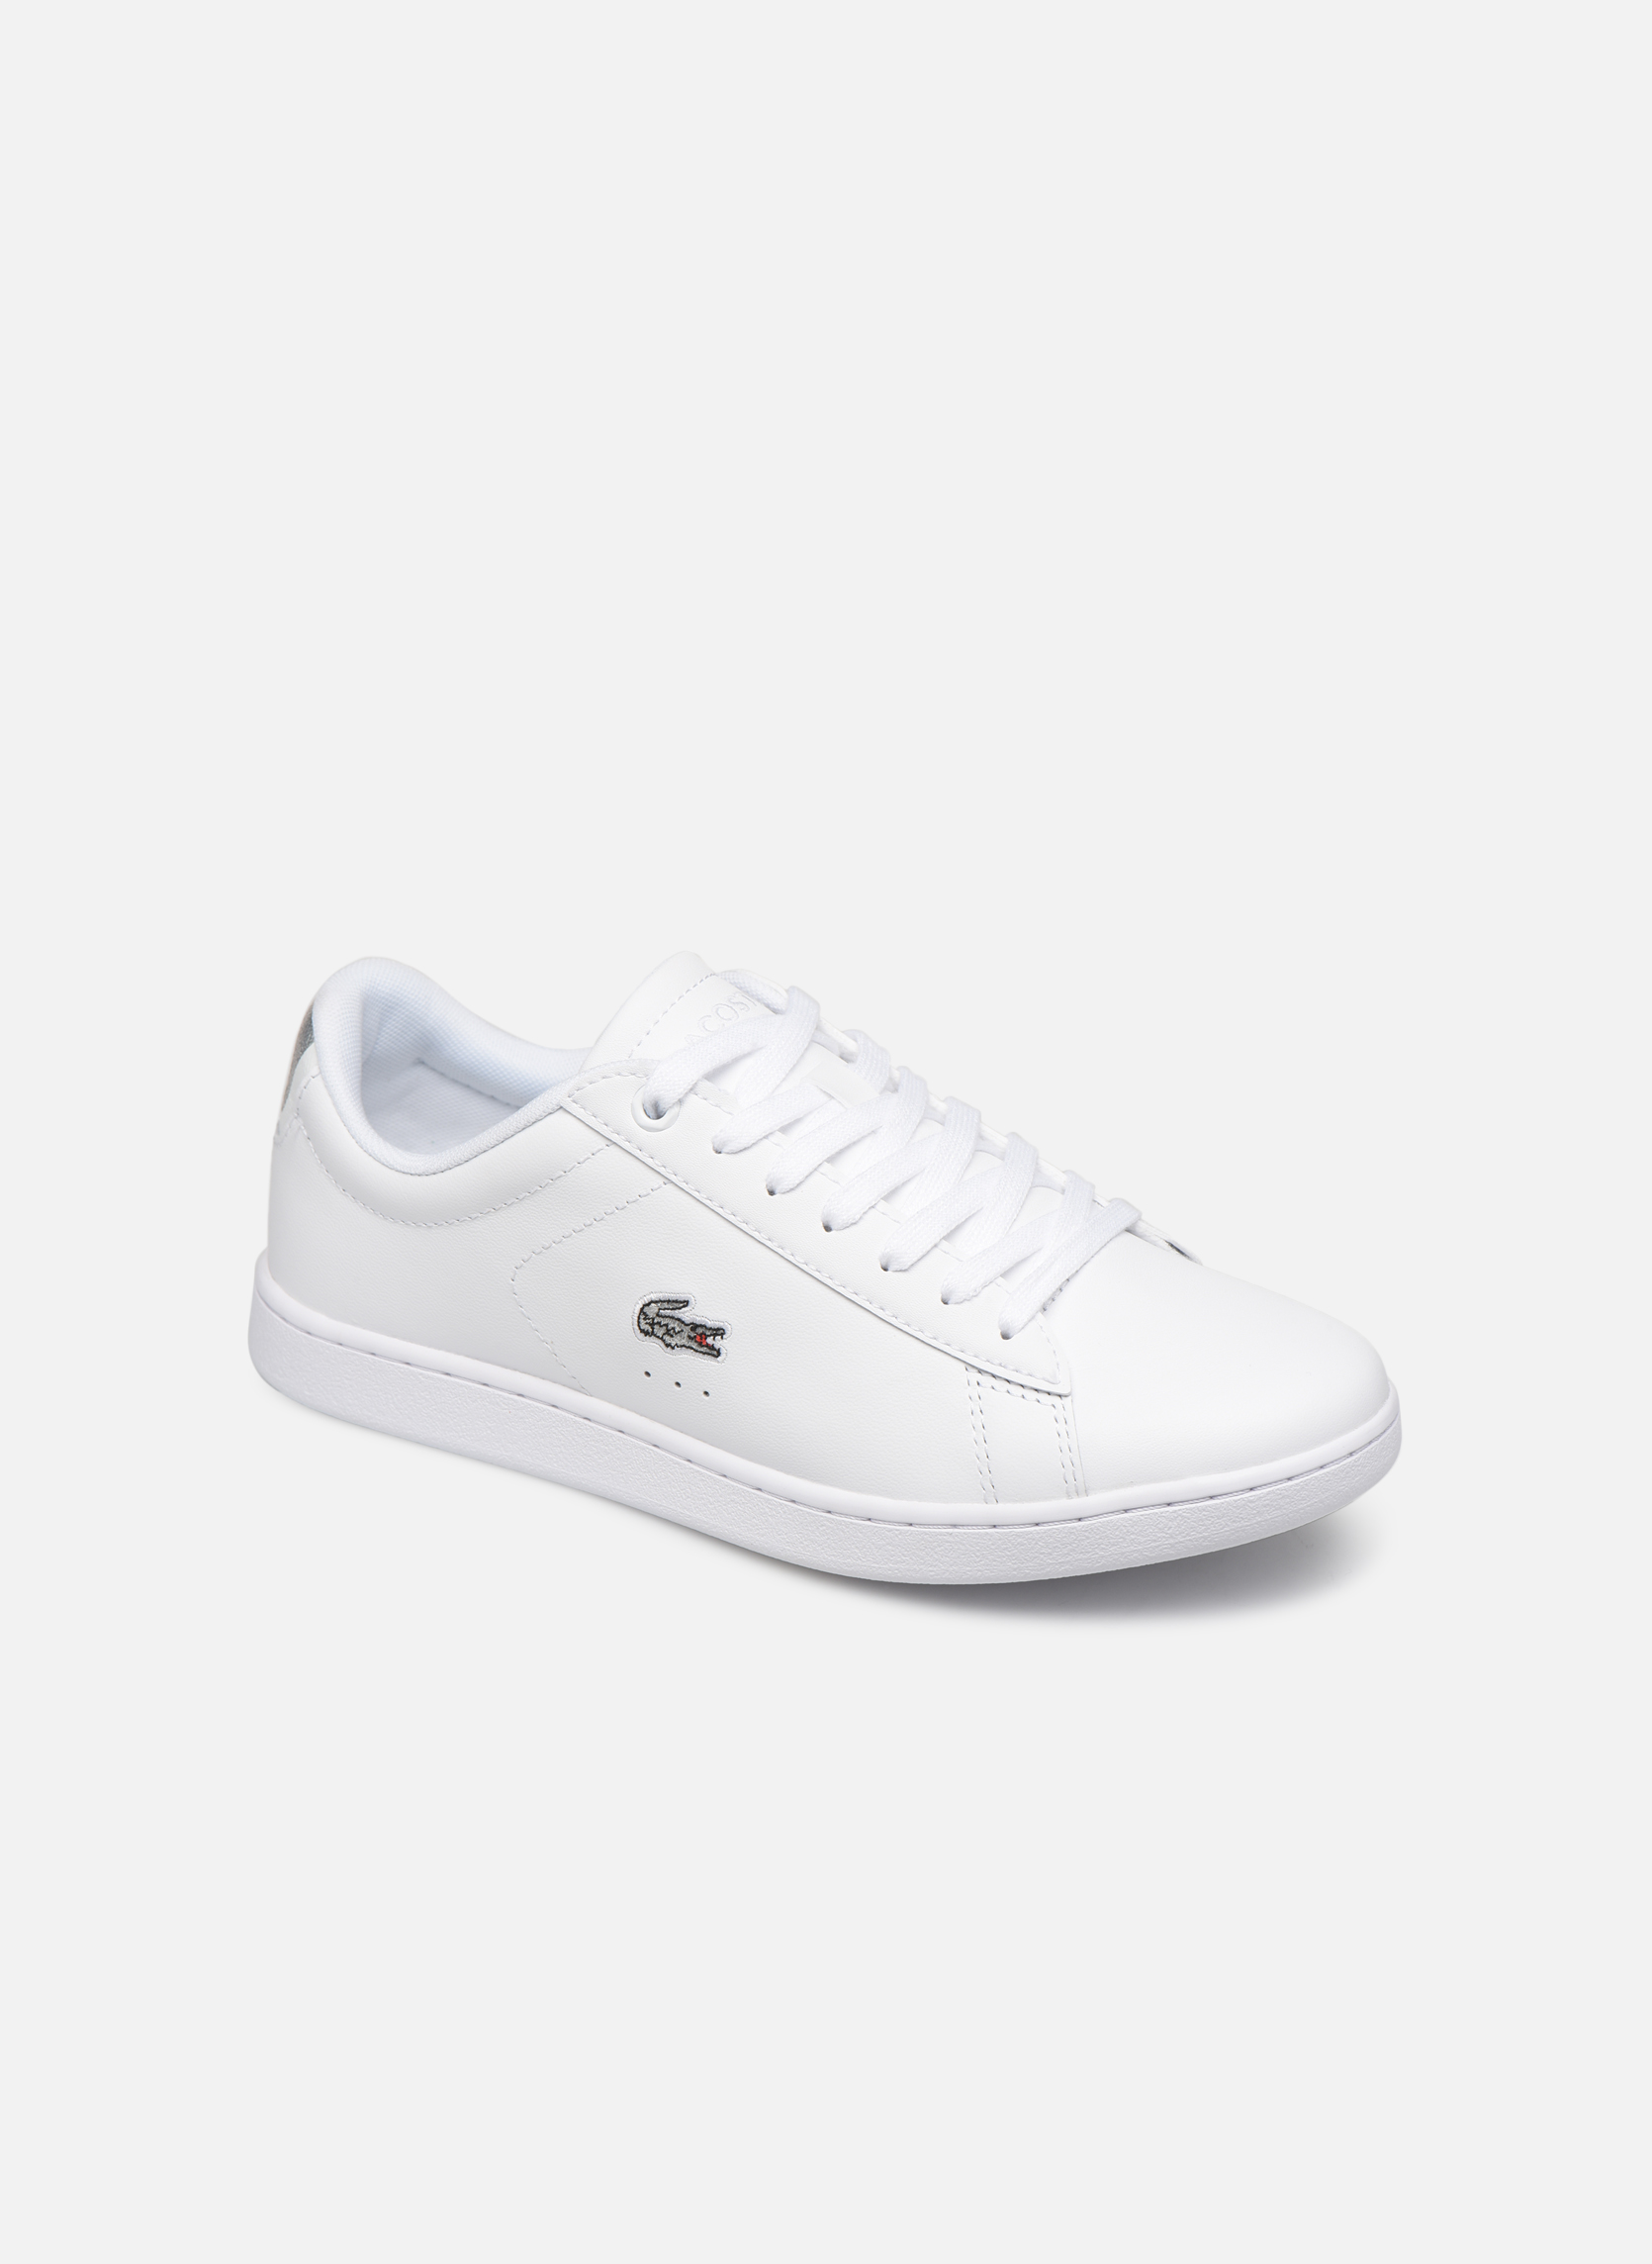 Sneakers Carnaby Evo 219 1 Sfa by Lacoste